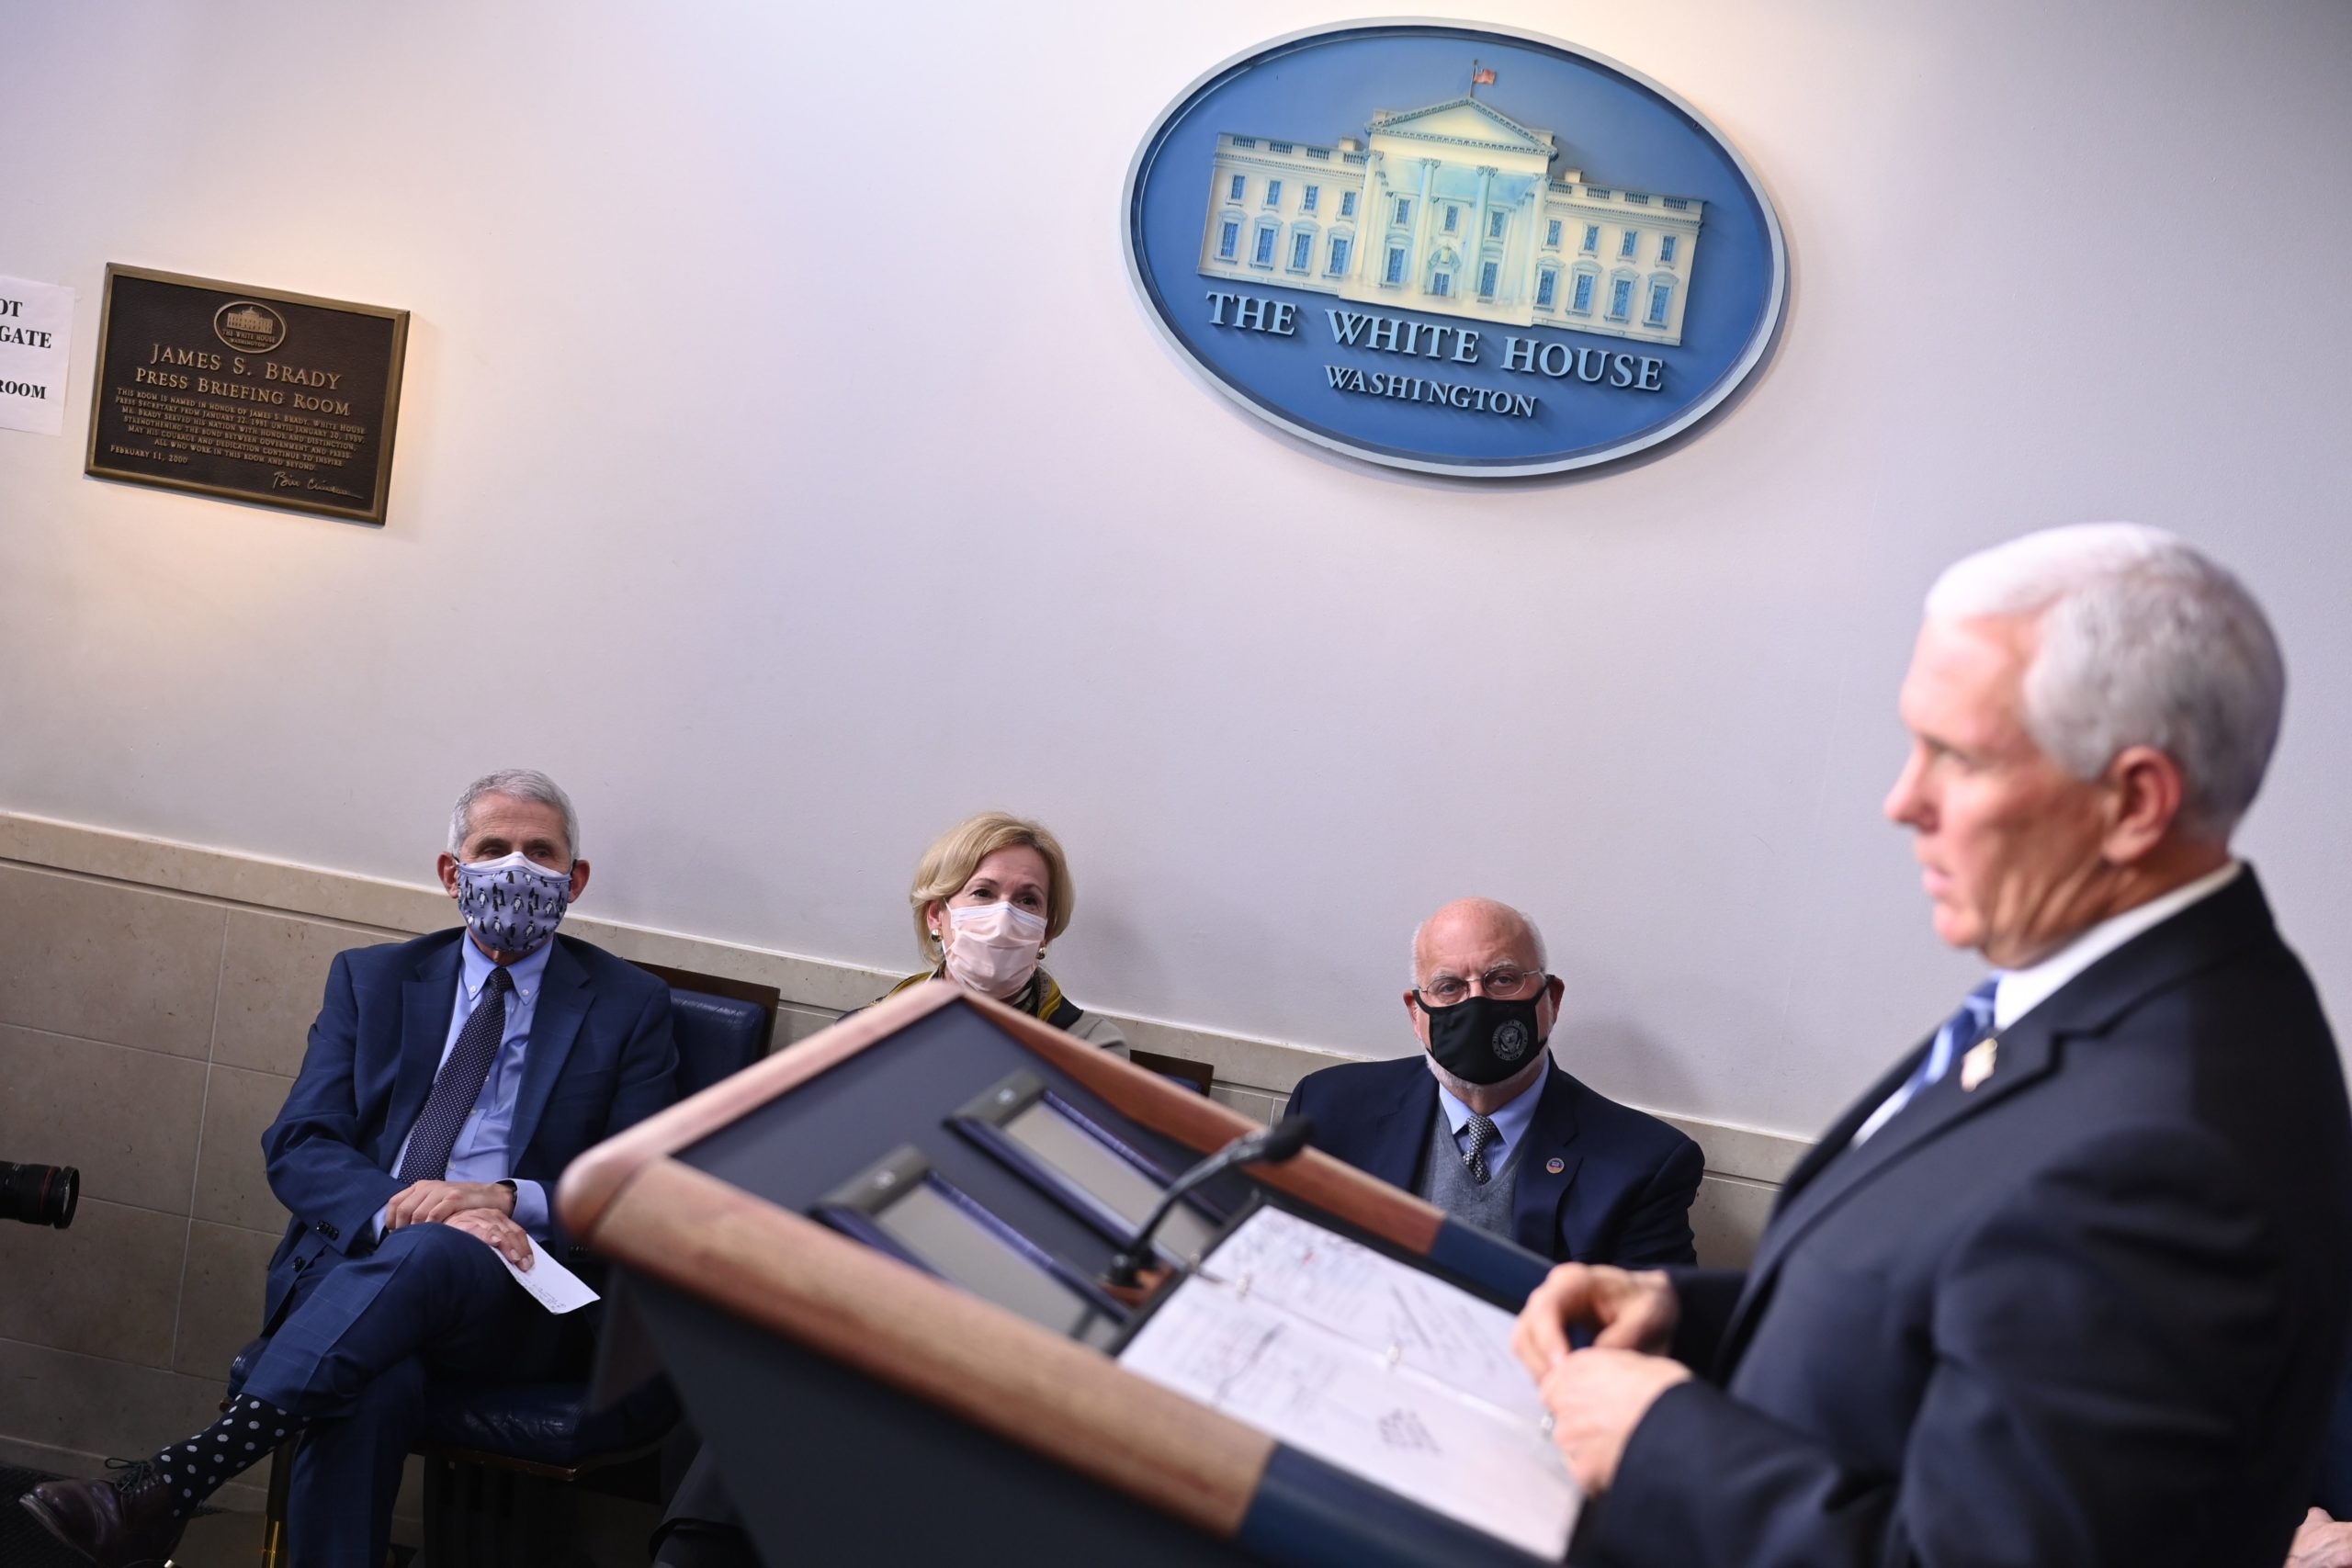 (L-R) Director of the National Institute of Allergy and Infectious Diseases Anthony Fauci, Response coordinator for White House Coronavirus Task Force Deborah Birx and Director of the Centers for Disease Control Robert Redfield listen to Vice President Mike Pence speak during a White House Coronavirus Task Force press briefing in the James S. Brady Briefing Room of the White House on November 19, 2020. (Photo by BRENDAN SMIALOWSKI/AFP via Getty Images)